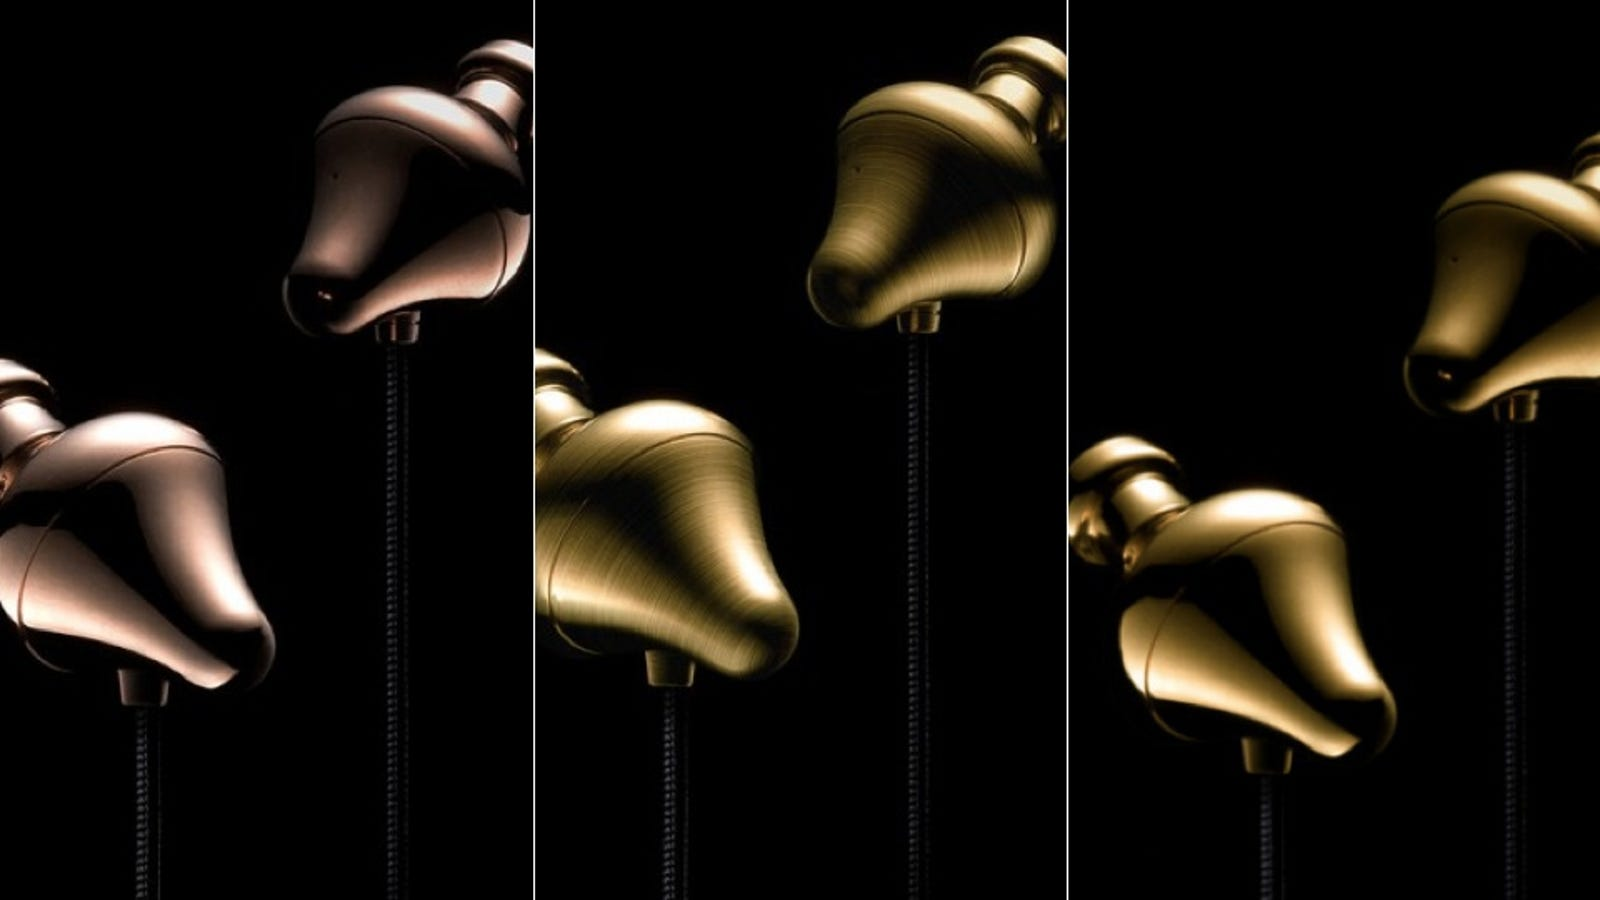 earbuds house of marley - Run Out of Things to Spend Money On? Here Are Some Gold-Plated Earbuds